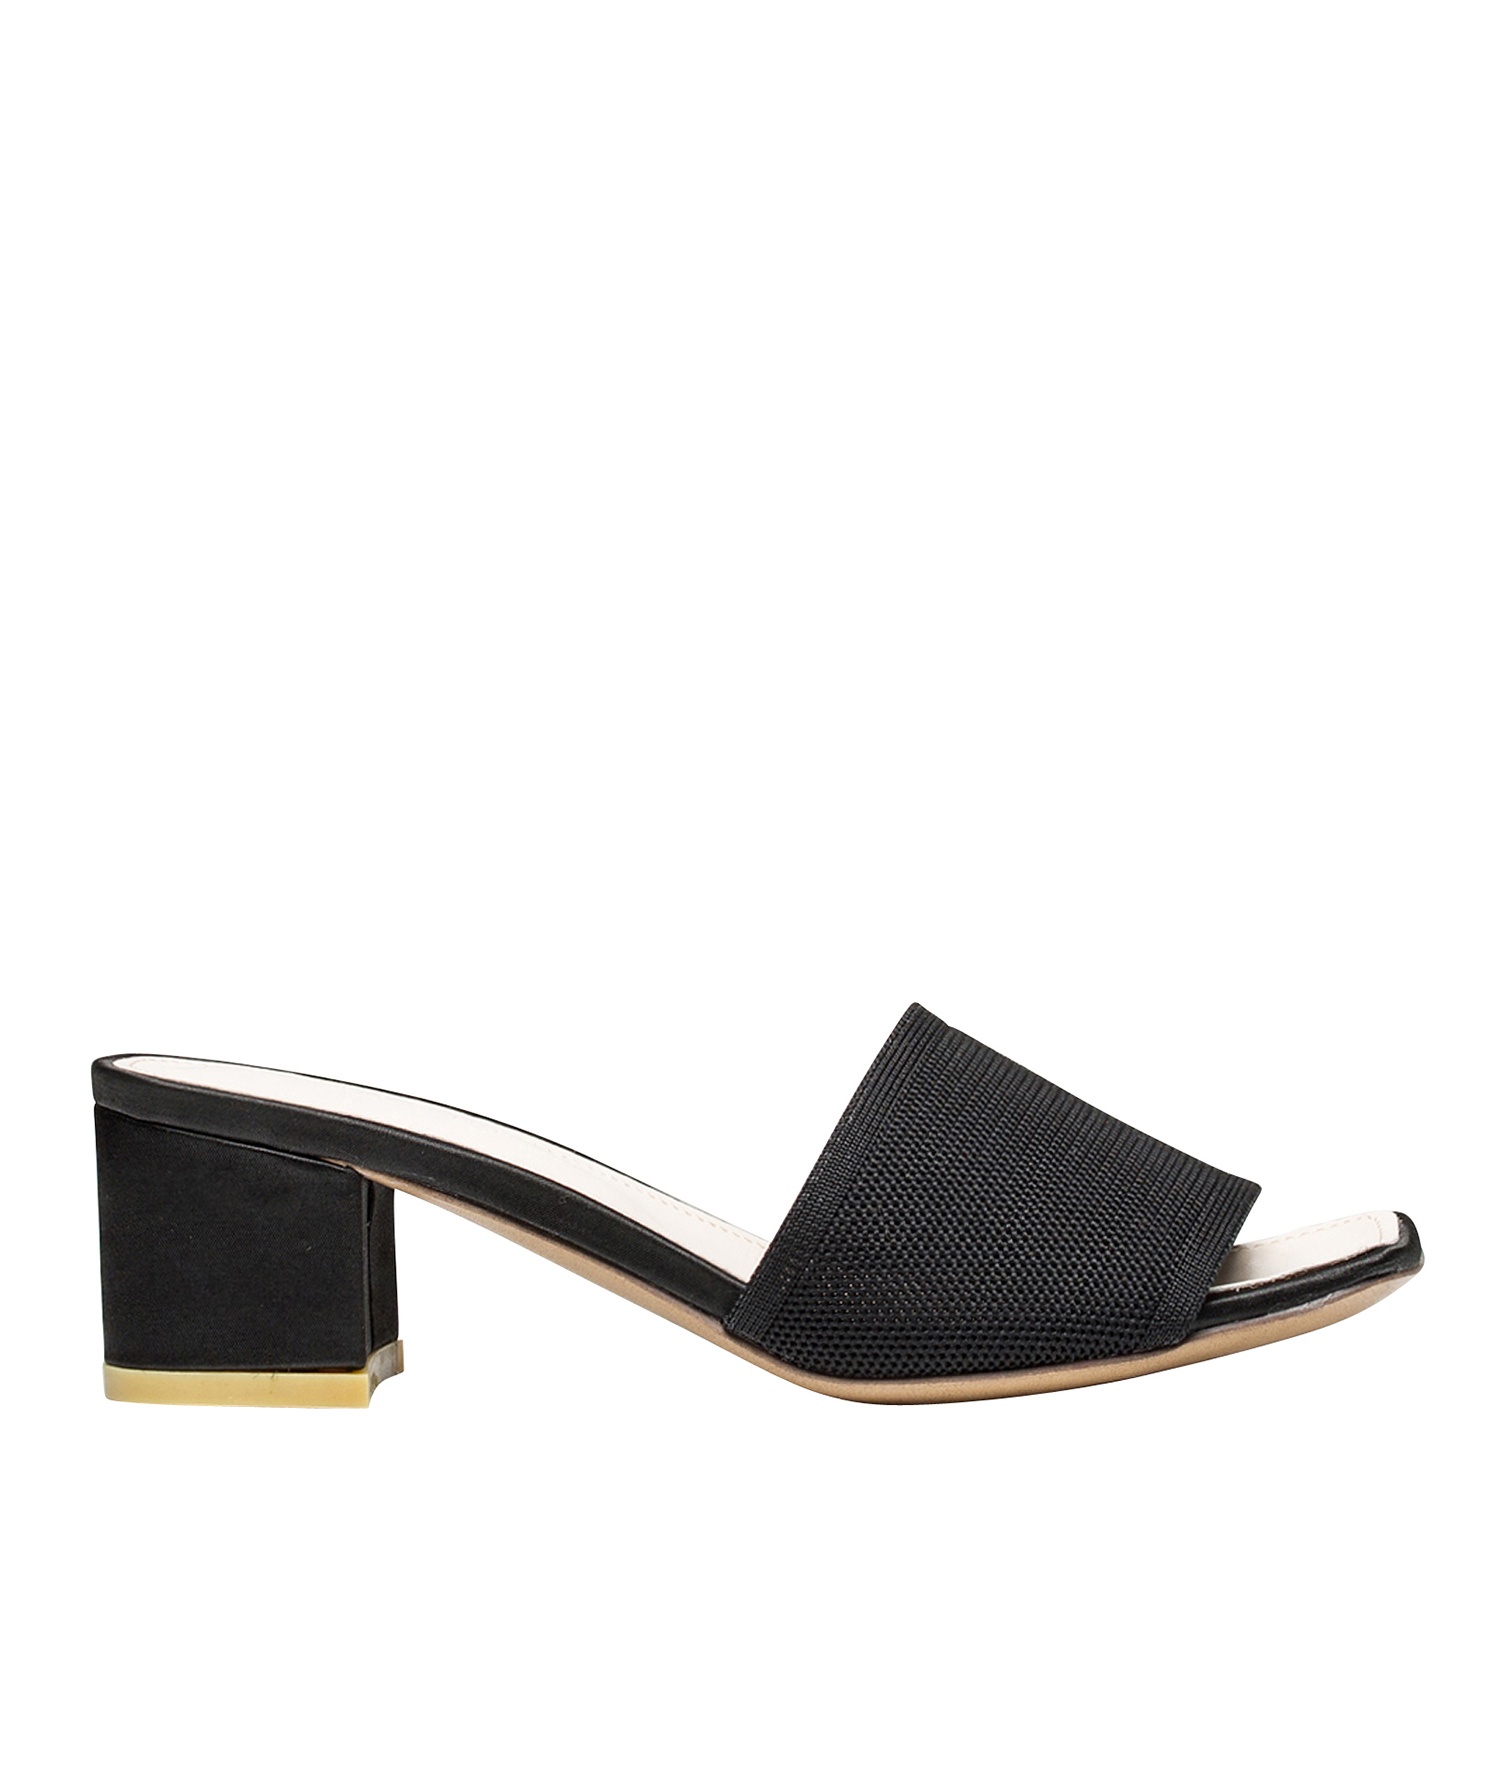 eec371c158899e AnnaKastle Womens Minimal Fabric Slide Block Heel Sandals Black